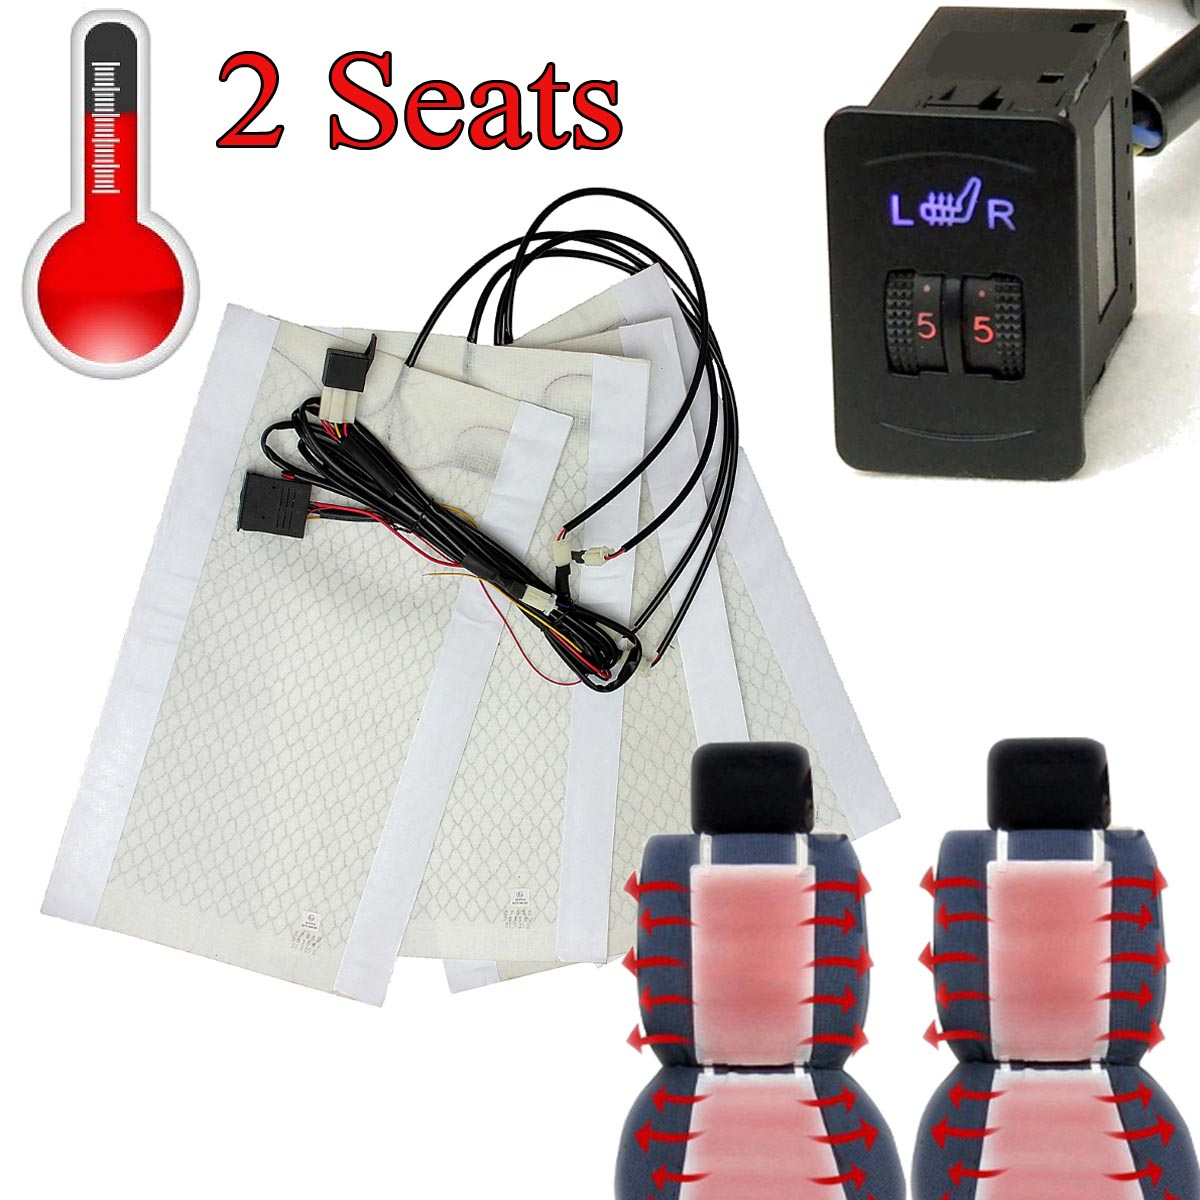 12V 2 Seats 4 Pads Car Seat Cushion Carbon Fiber Heated Seat Heating Heater Pads 2 Dial 5 Level Switch Winter Warmer Seat Covers